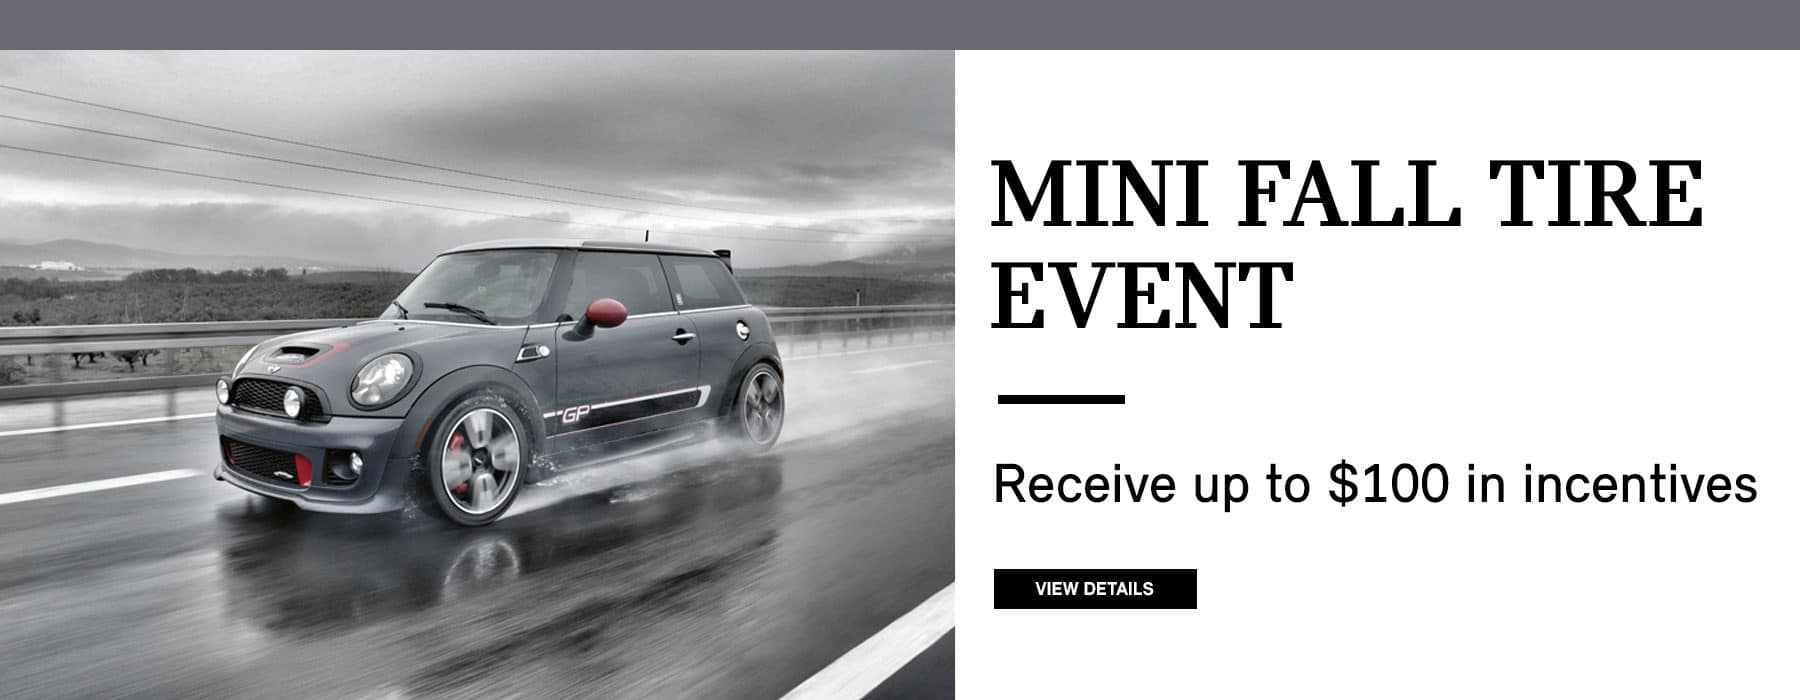 MINI FALL TIRE EVENT. Receive up to $100 in incentives. Click to view details.